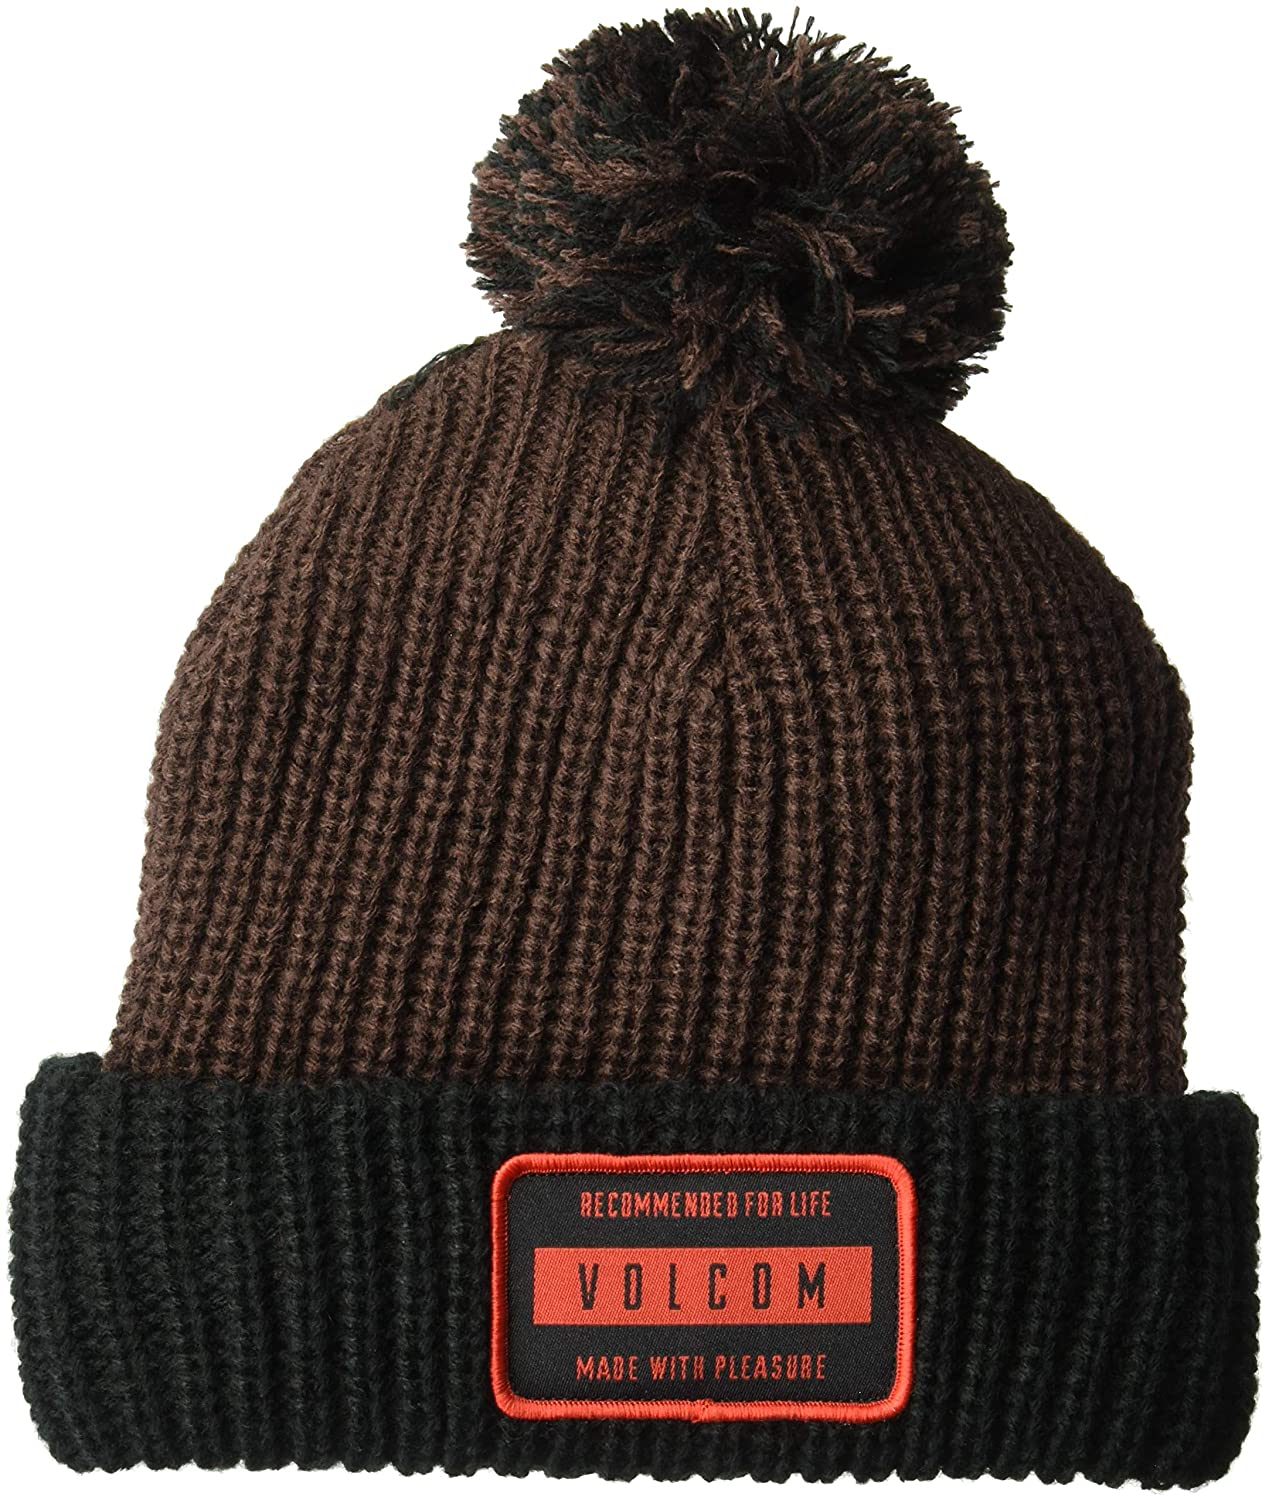 442dc0aa32d Volcom Men s TTT Fleece Lined Beanie Black One Size Fits All J5851907